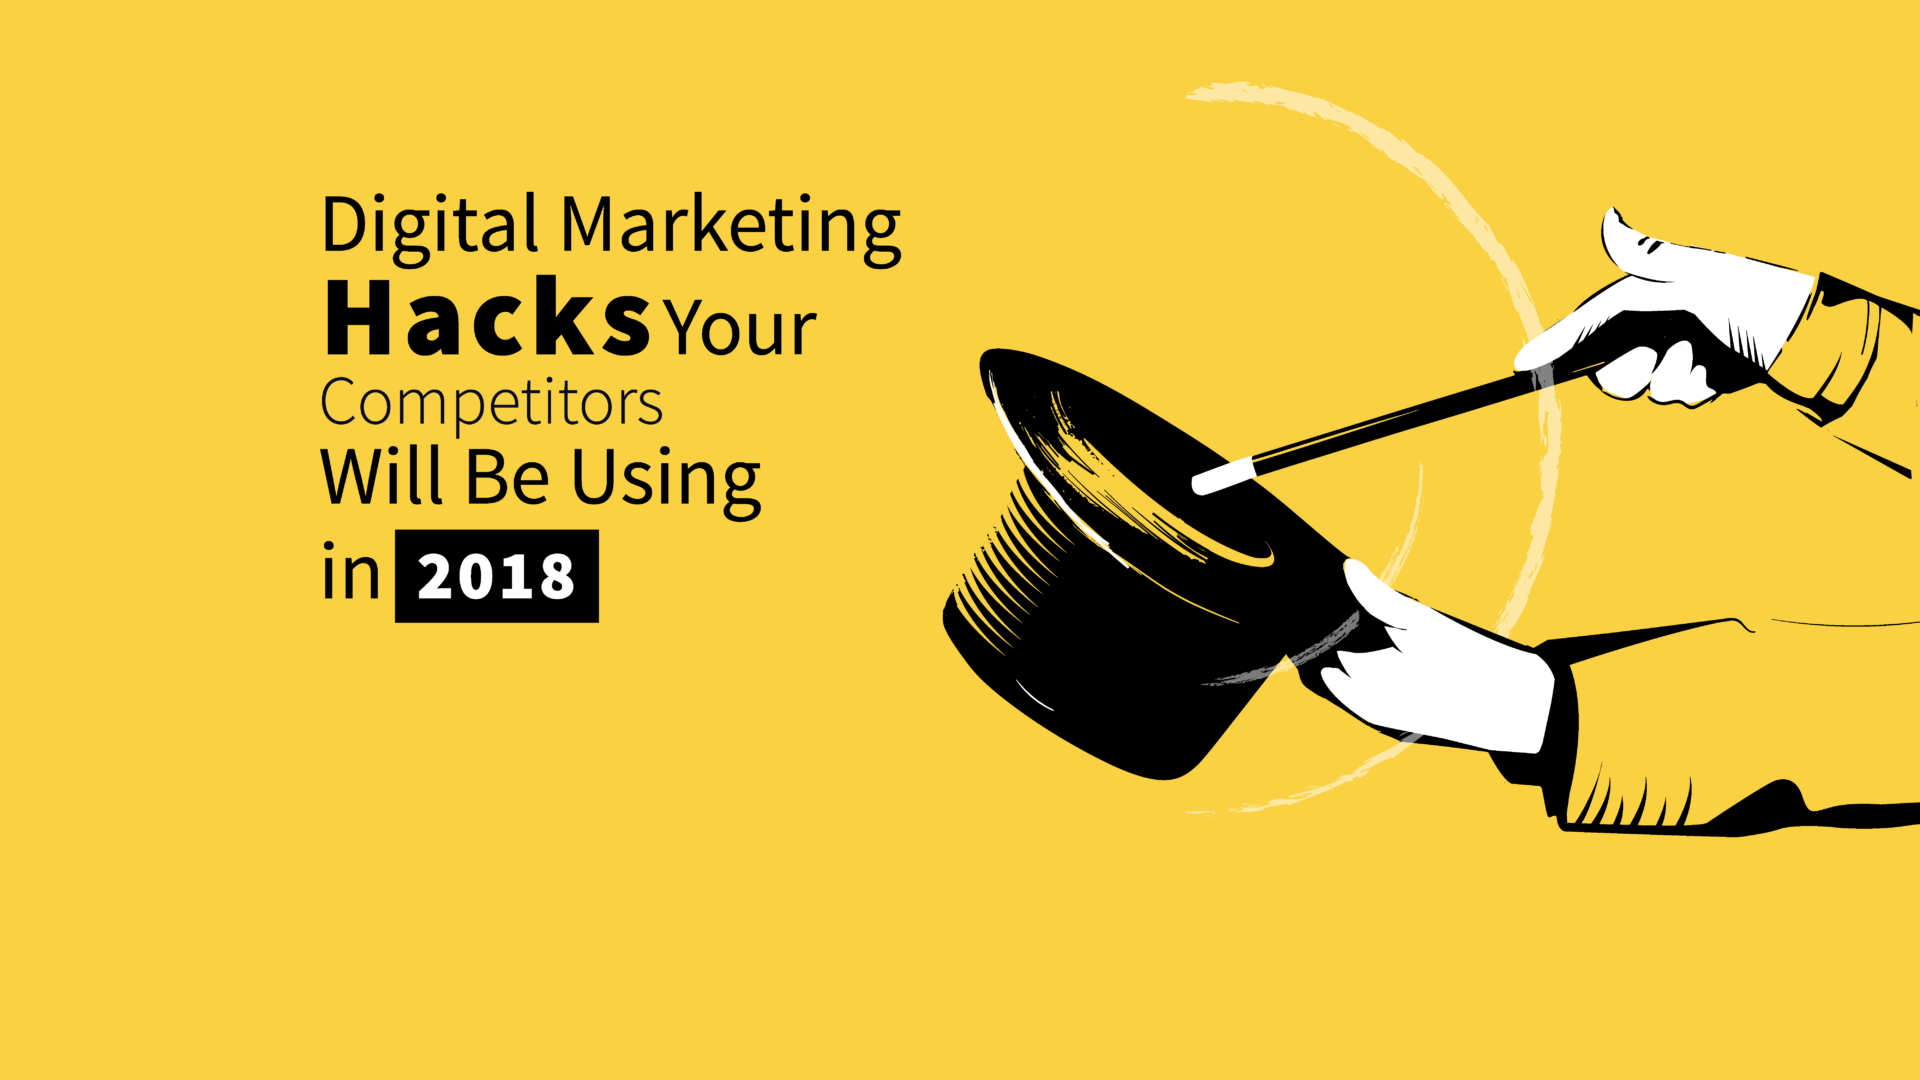 Digital Marketing Hacks Your Competitors Will Be Using in 2018